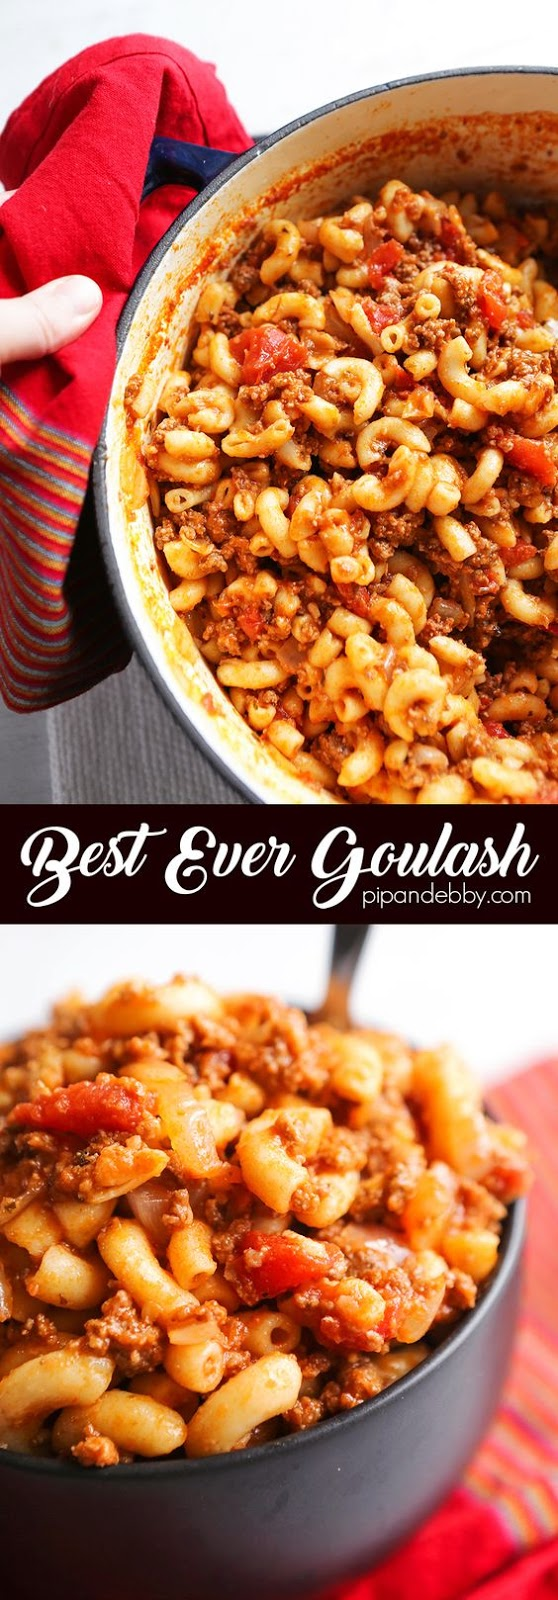 BEST EVER GOULASH